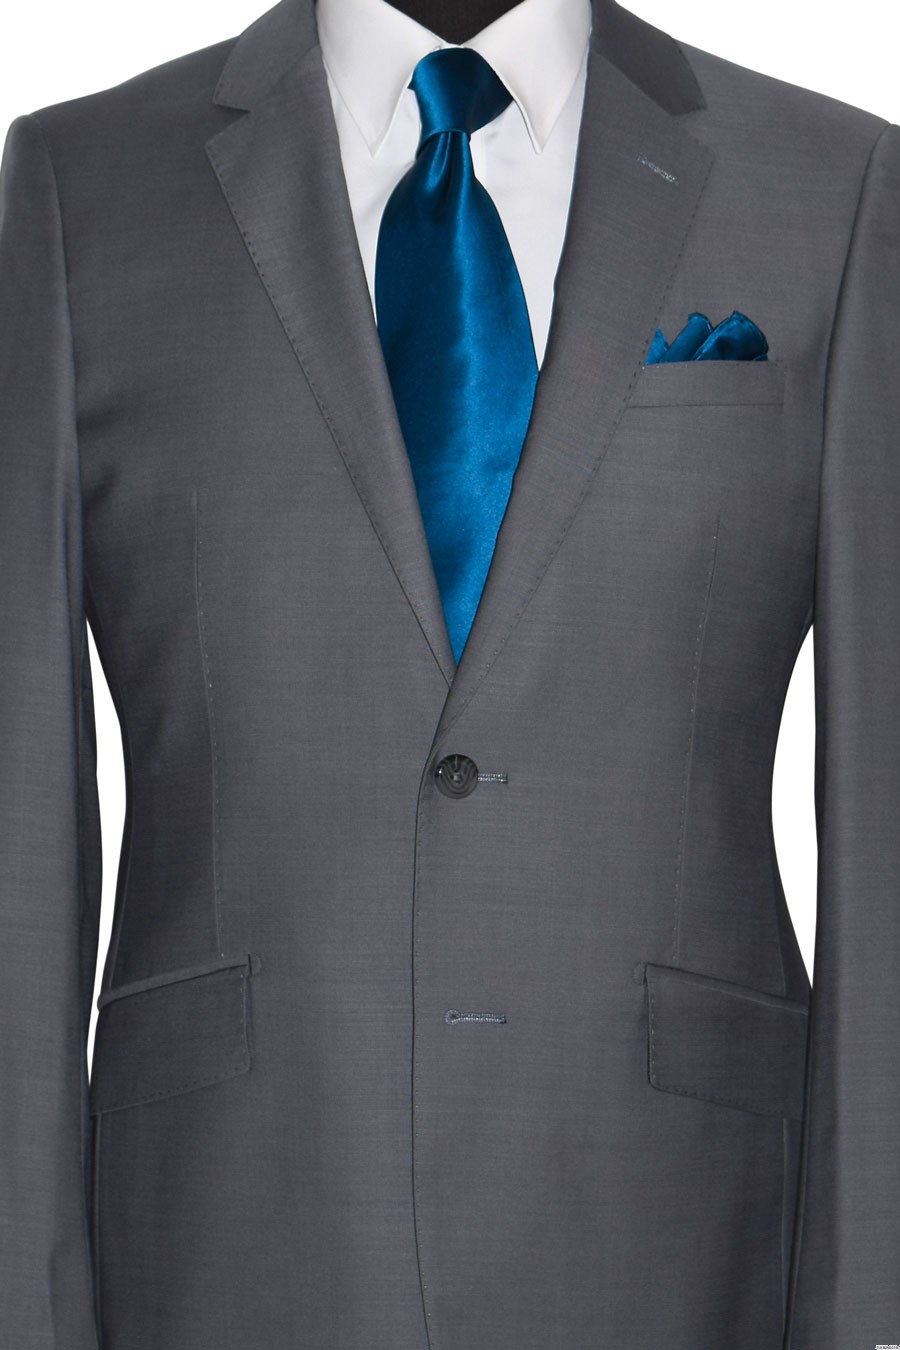 mens gray suit with sapphire-blue silk long dress tie